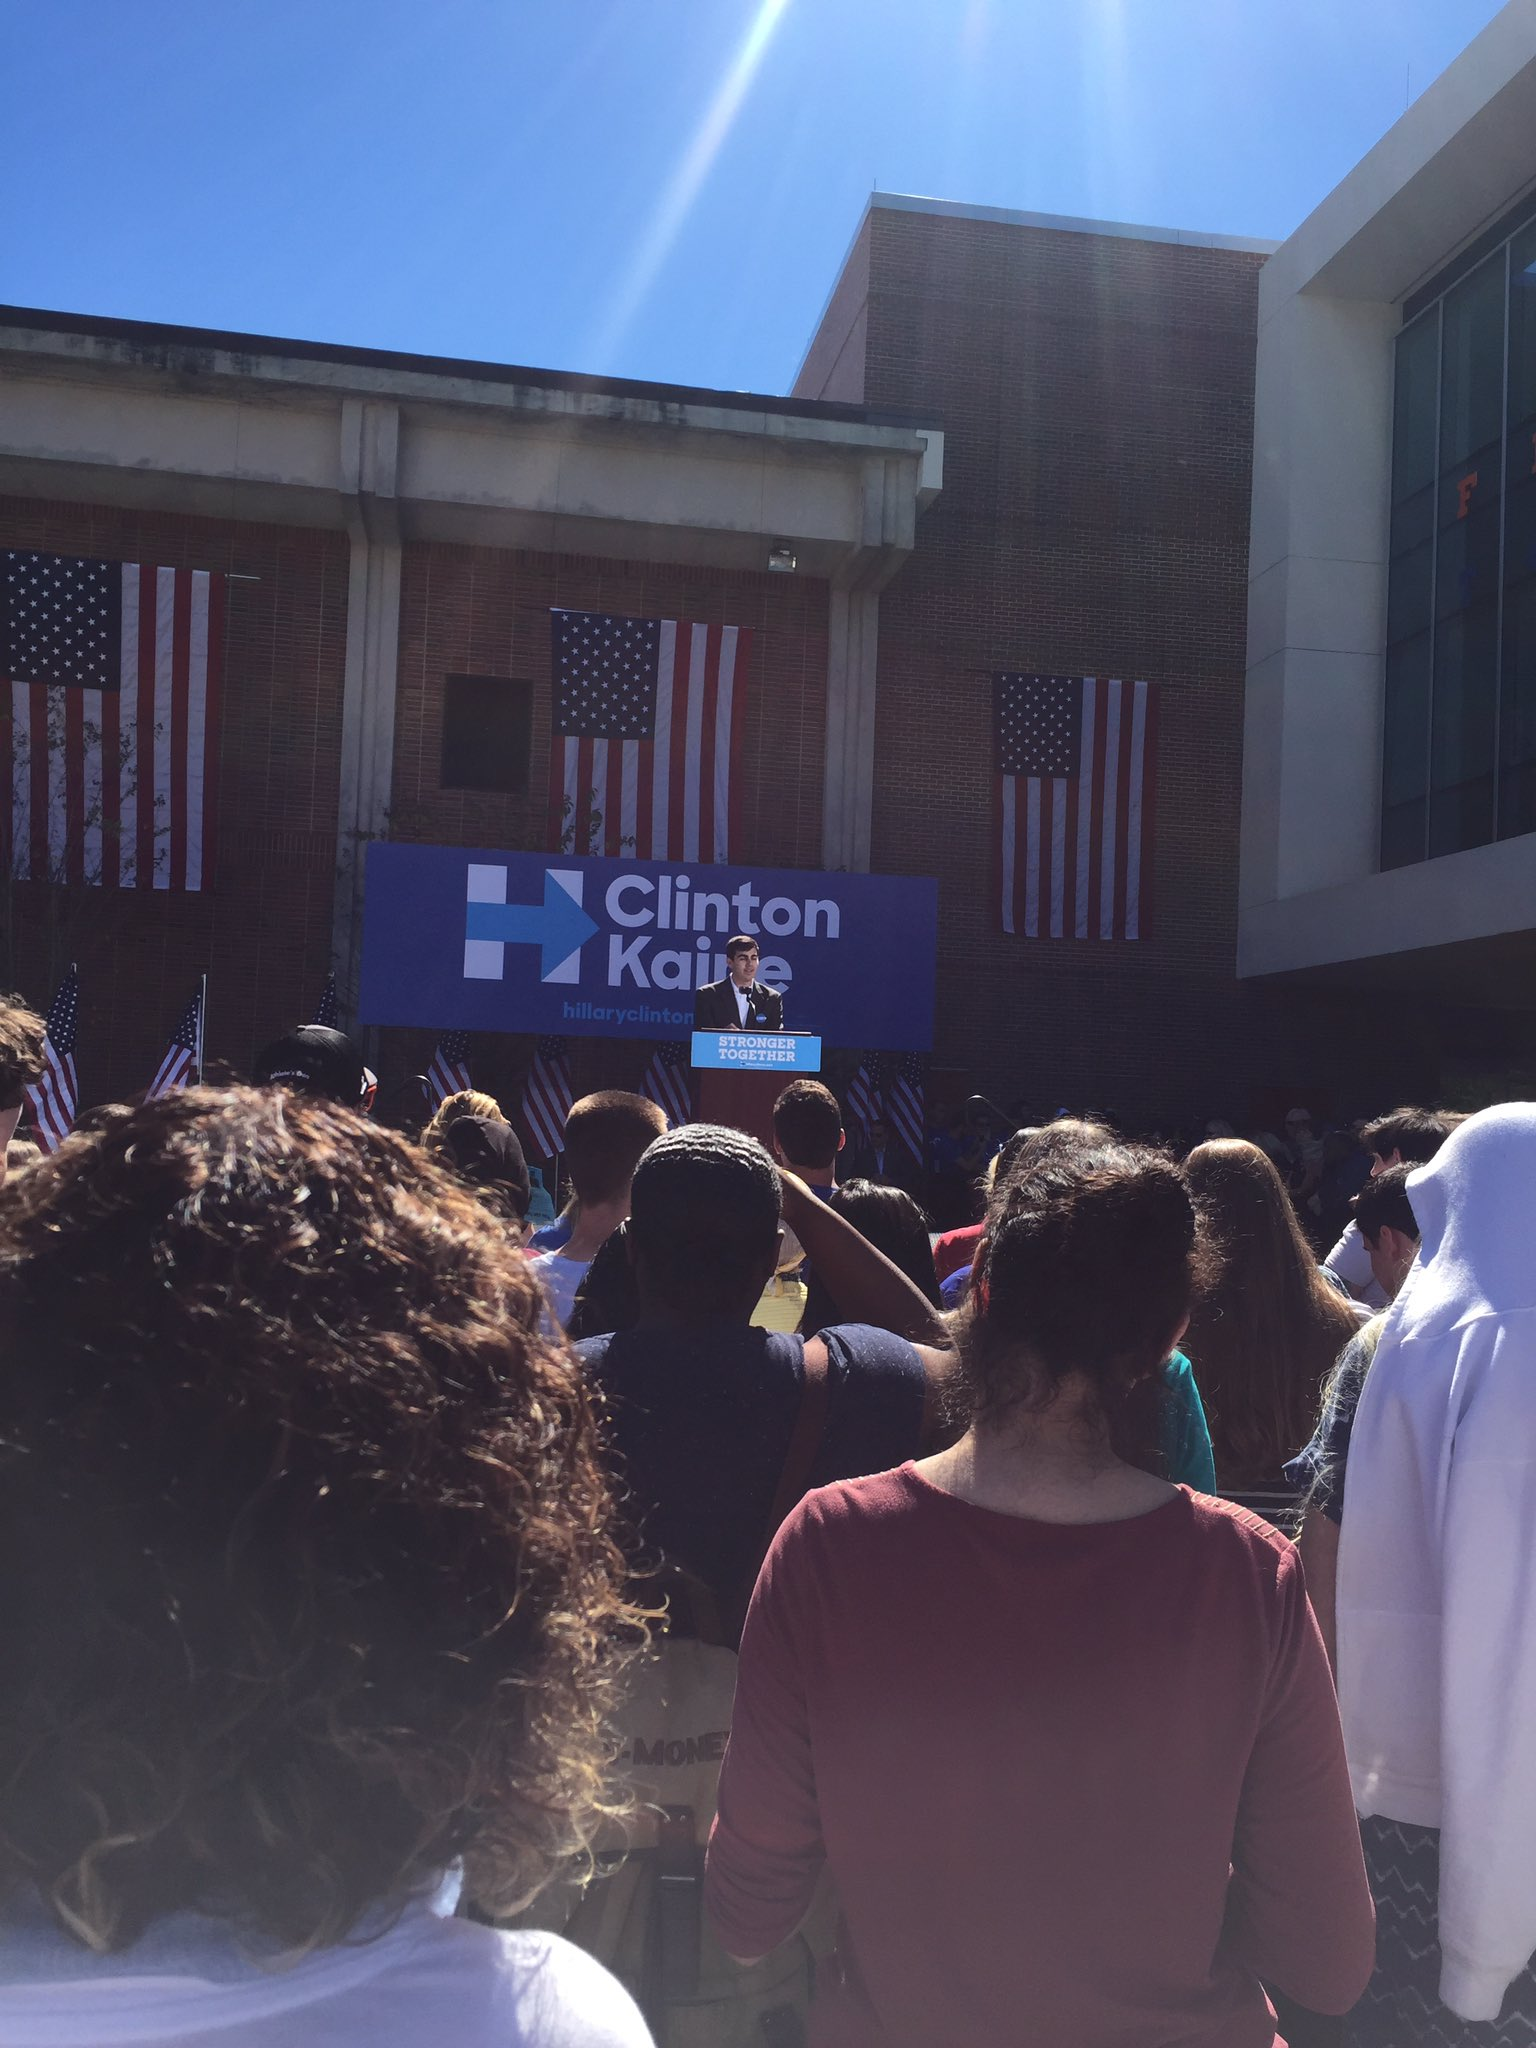 Jake Best, President of Gators for Hillary takes the stage #FLtogether https://t.co/tEHBvAStwB